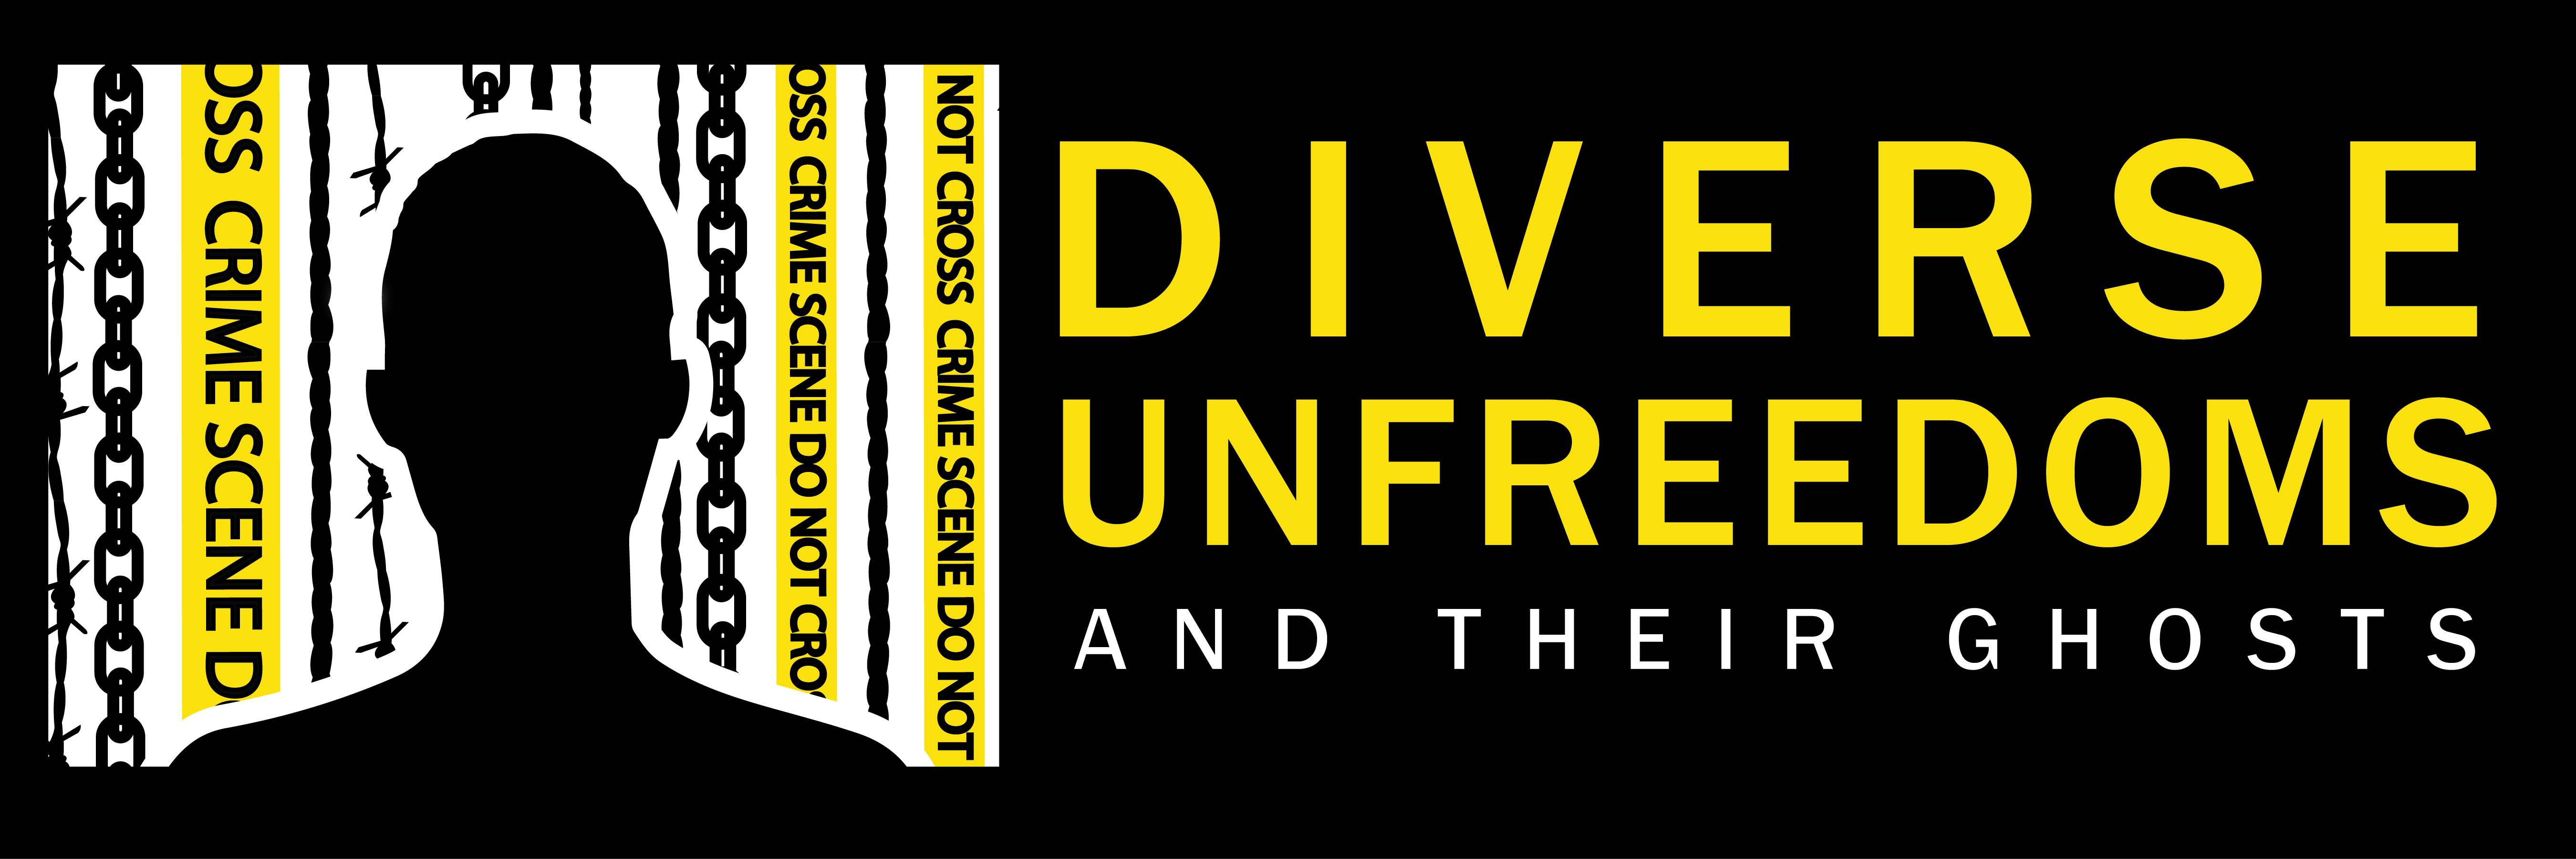 Diverse Unfreedoms Conference